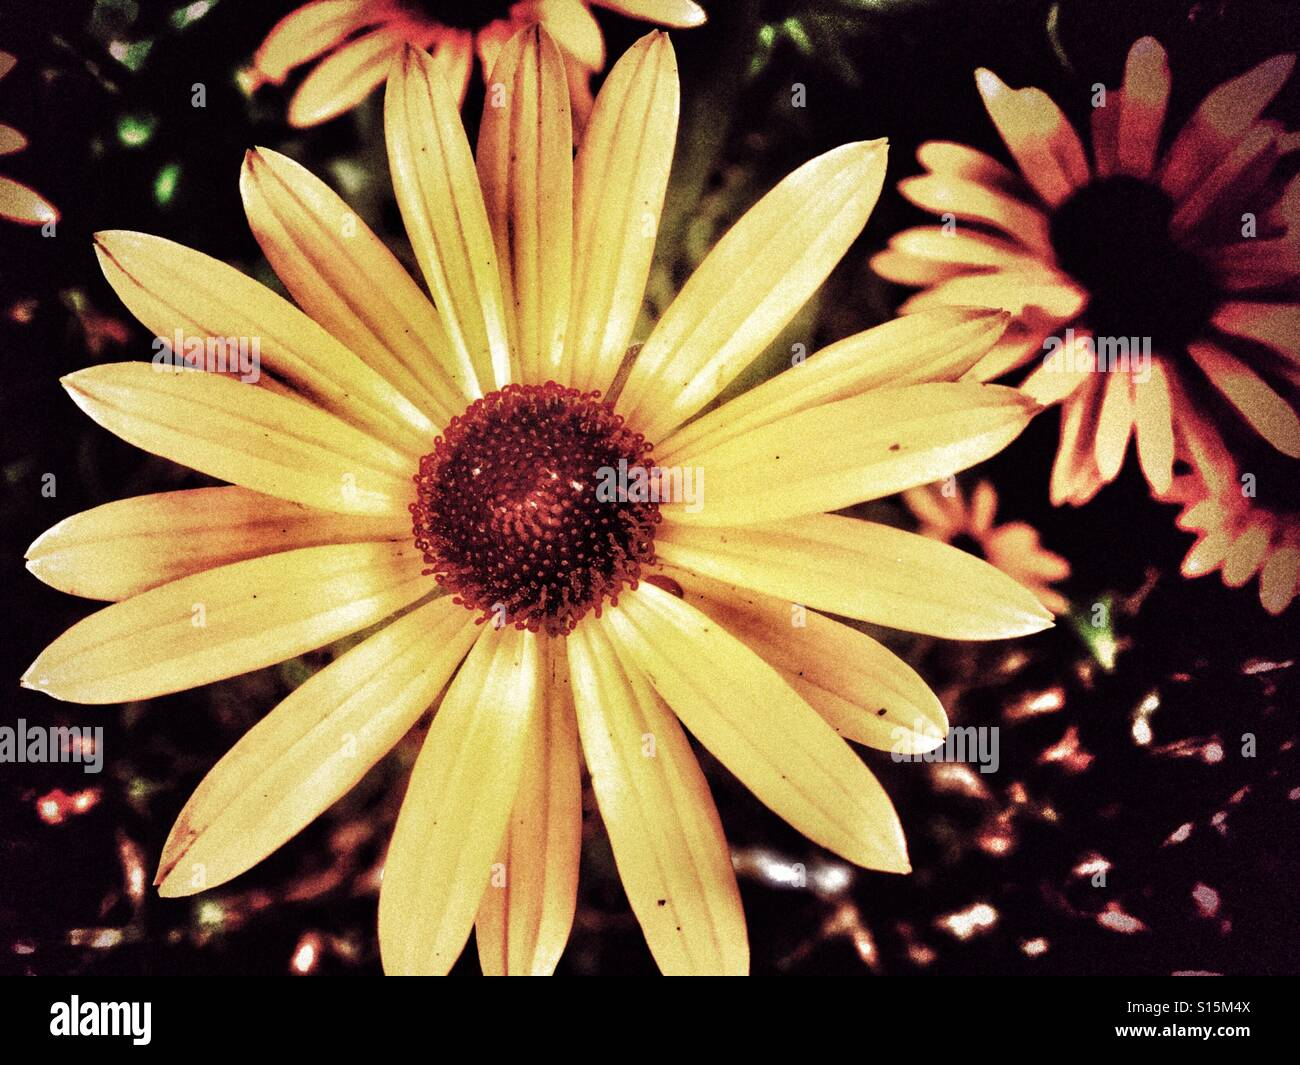 Daisy type flower stock photos daisy type flower stock images alamy patterns in nature yellow daisy type rudbeckia fulgida flower with a dark centre an izmirmasajfo